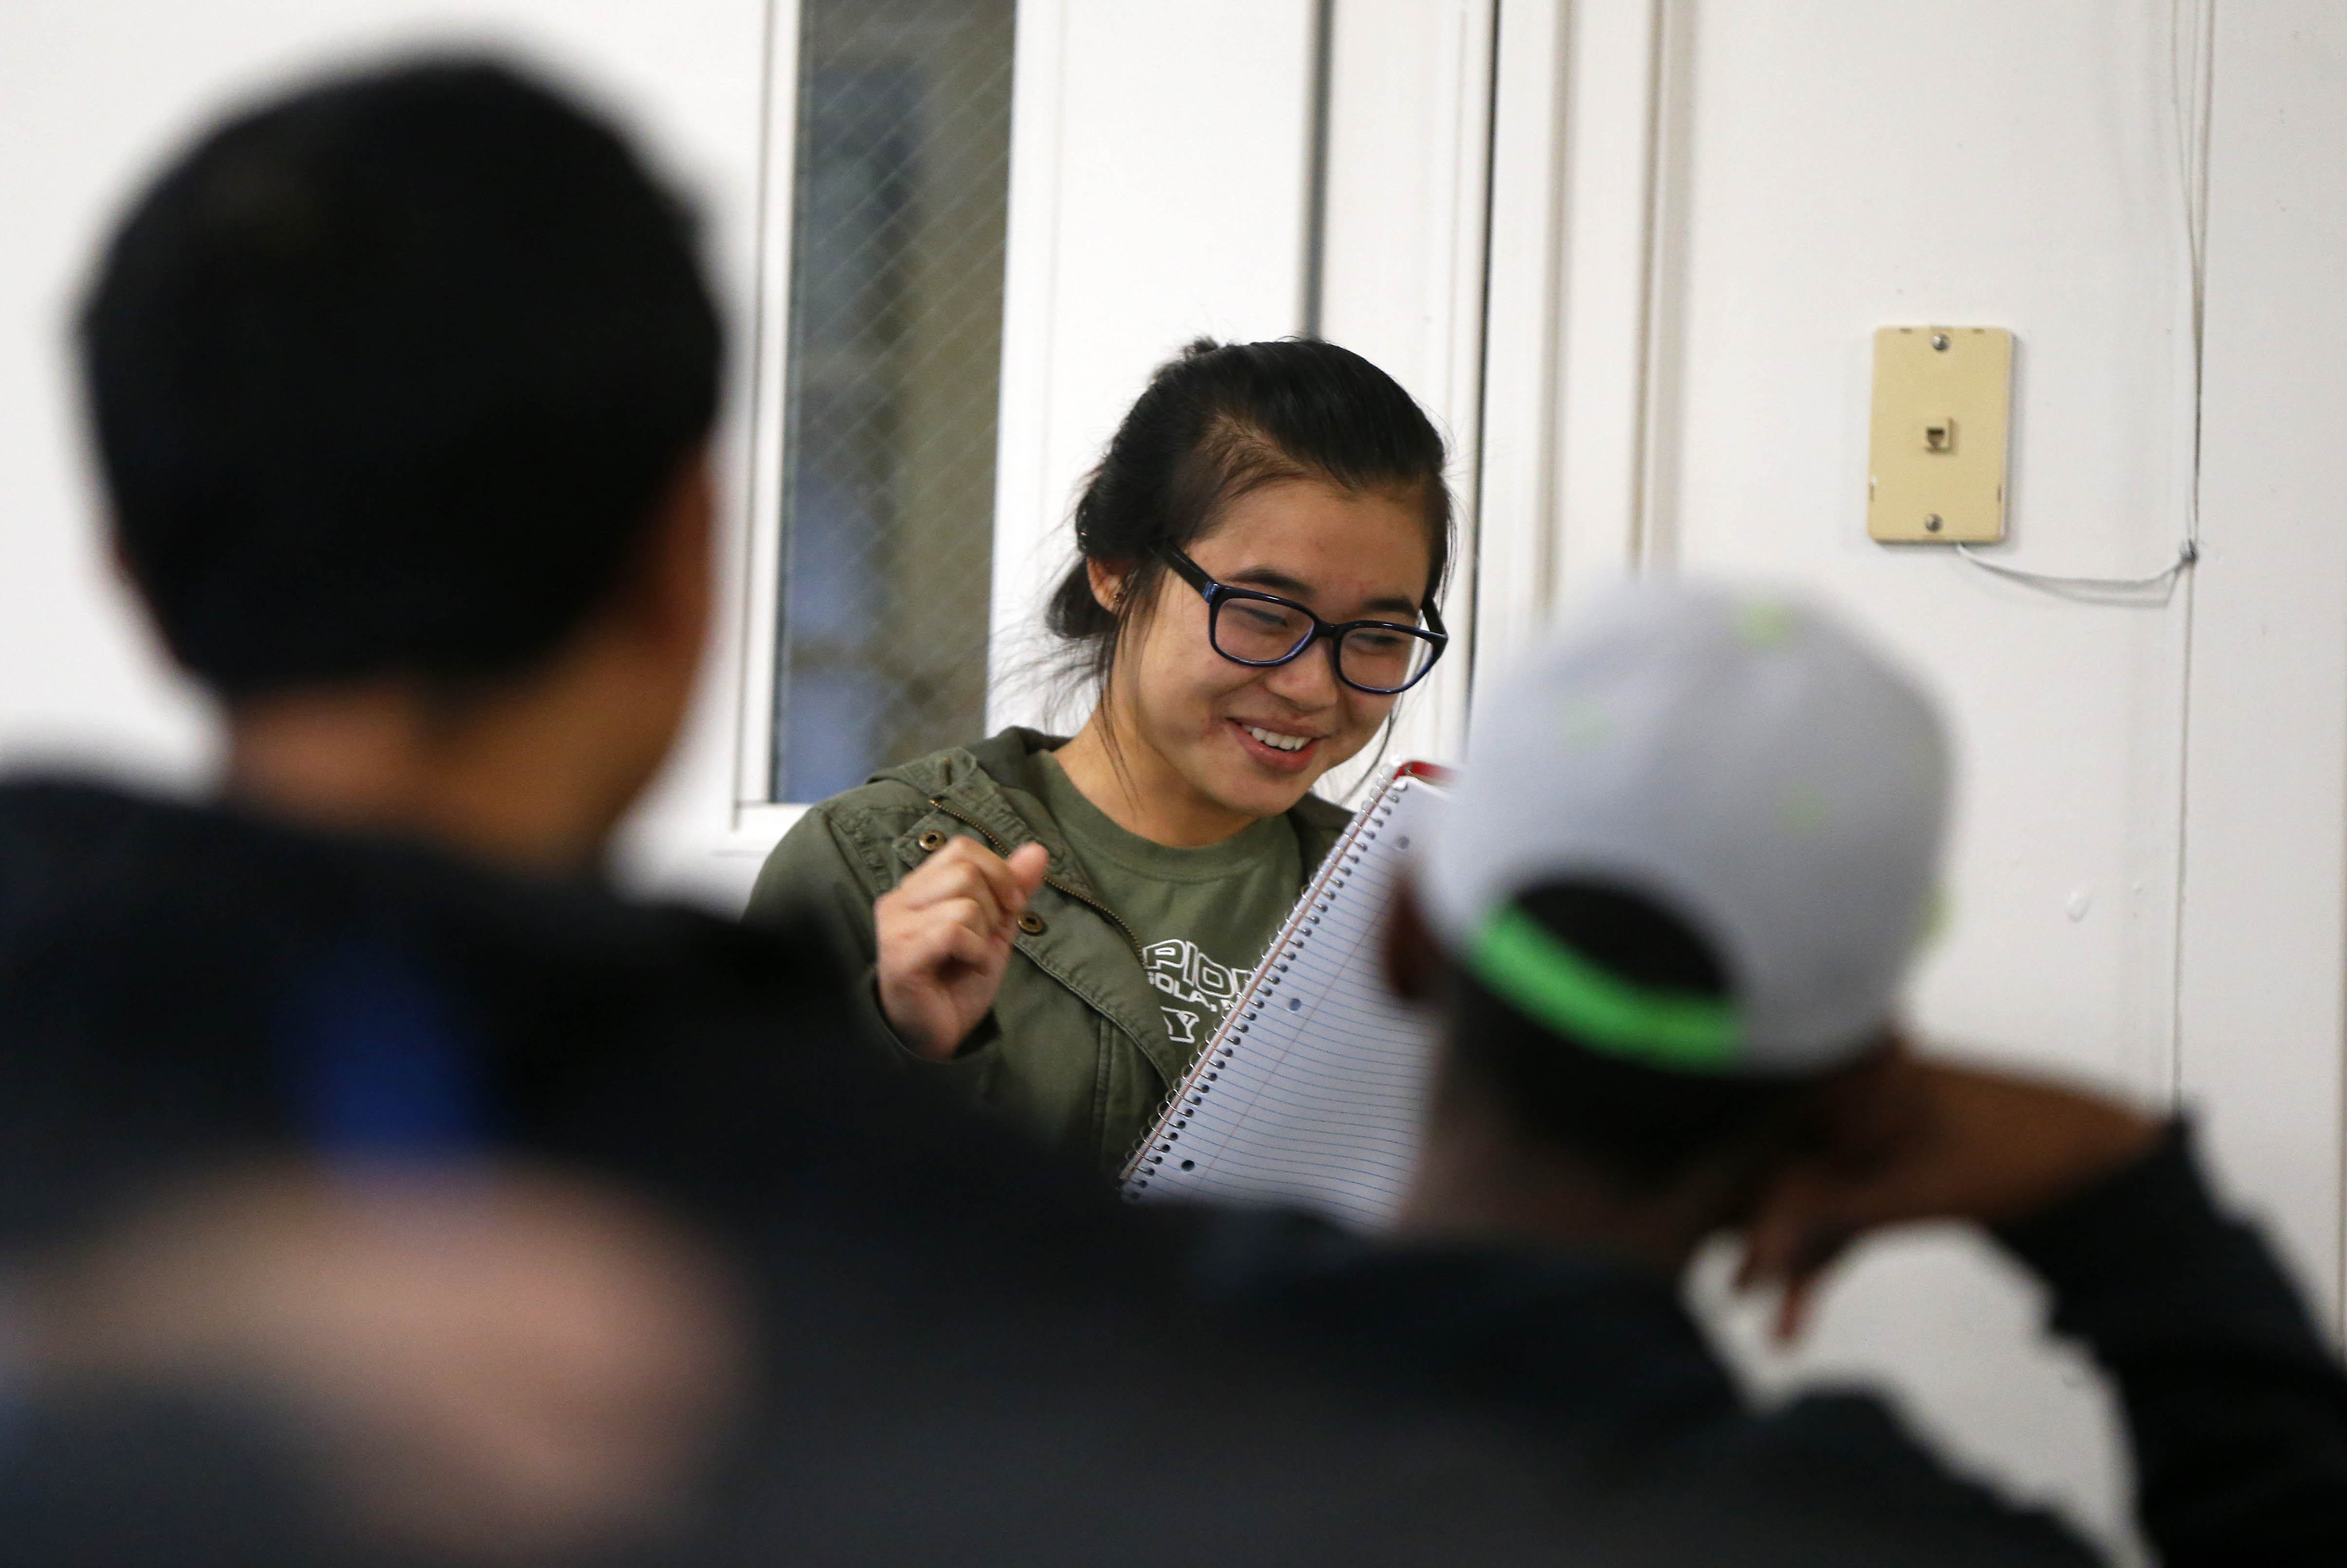 Moe This Sar does a public speaking exercise in front of her classmates during a communication class at Houghton College at the First Presbyterian Church in Buffalo Friday, Nov. 4, 2016. (Mark Mulville/Buffalo News)